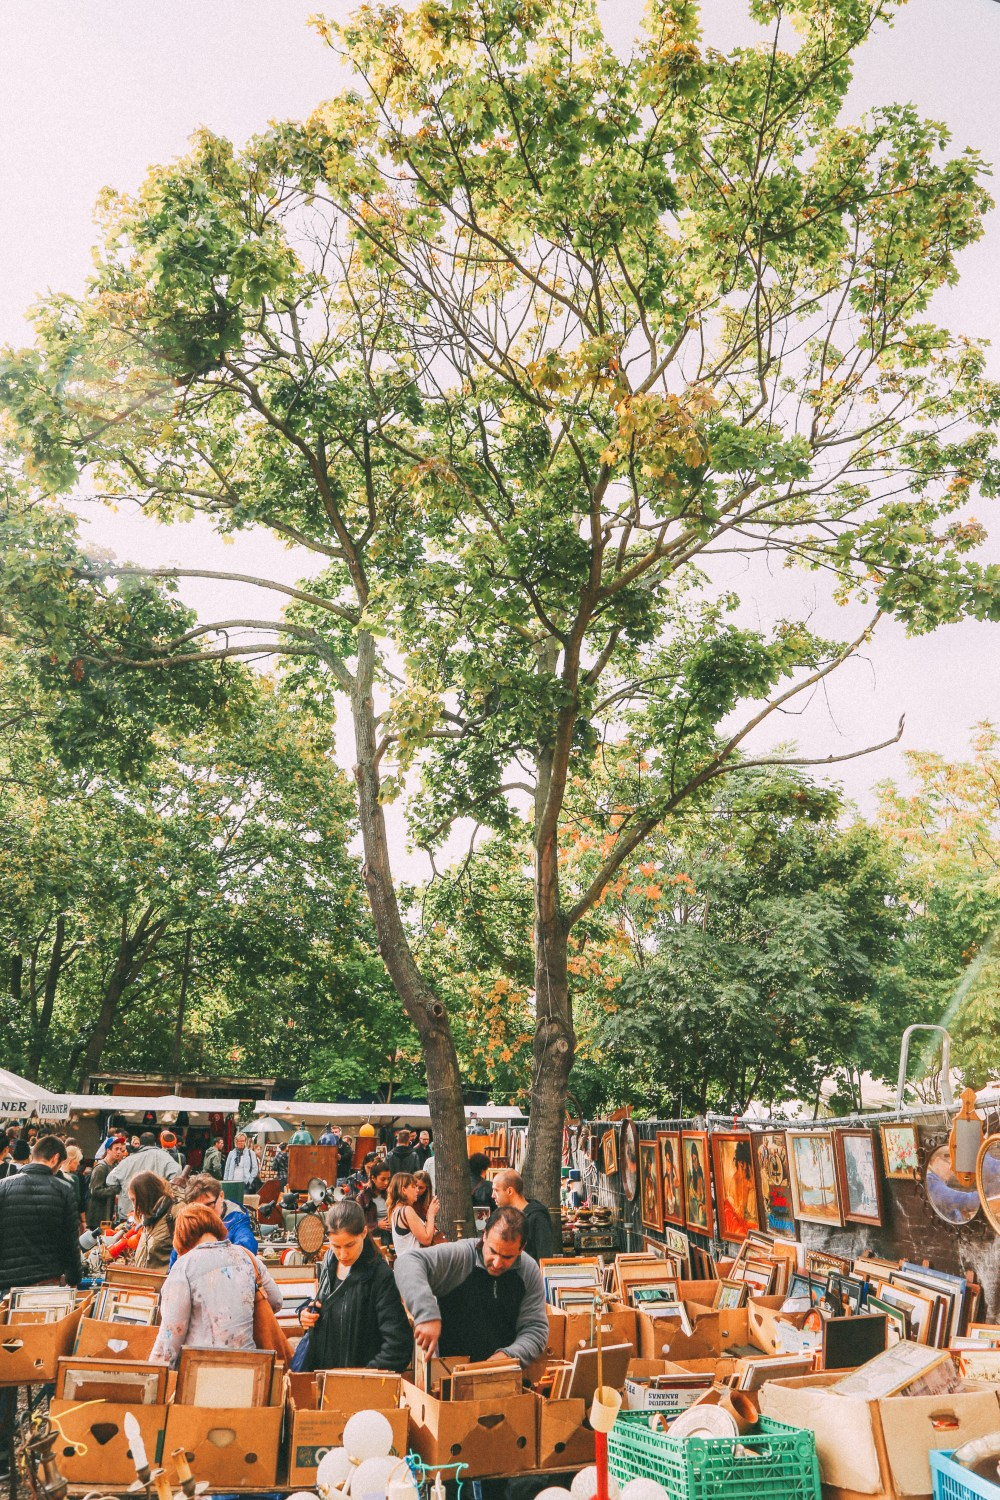 These Are The Many Reasons Why You Need To Visit The Berlin Flohmarkt In Mauerpark (9)